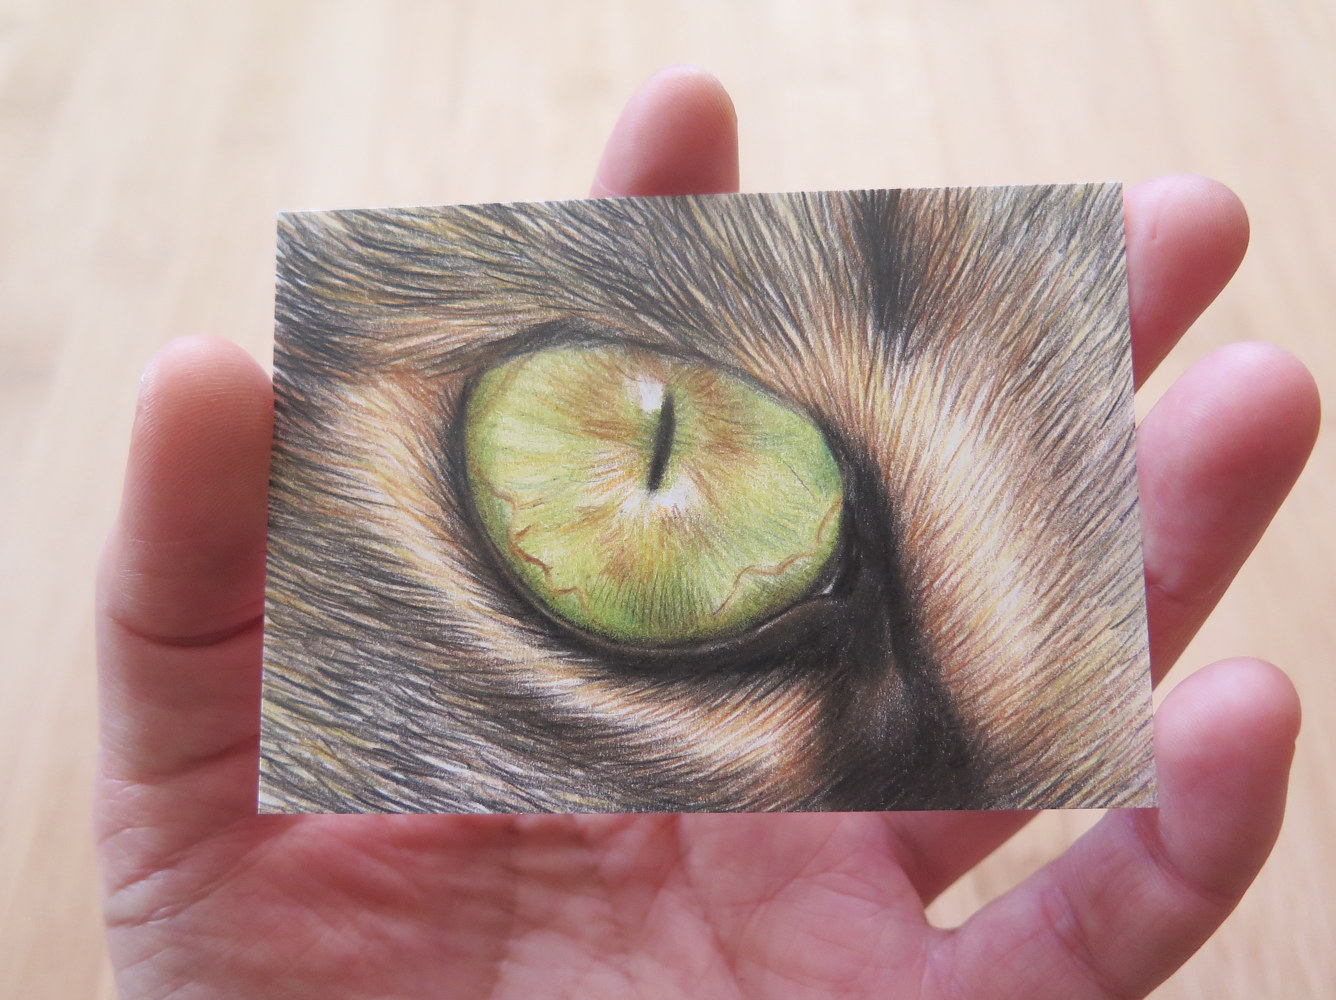 Dessin miniature ACEO - Oeil de chat, 2016 by Genevieve Desy